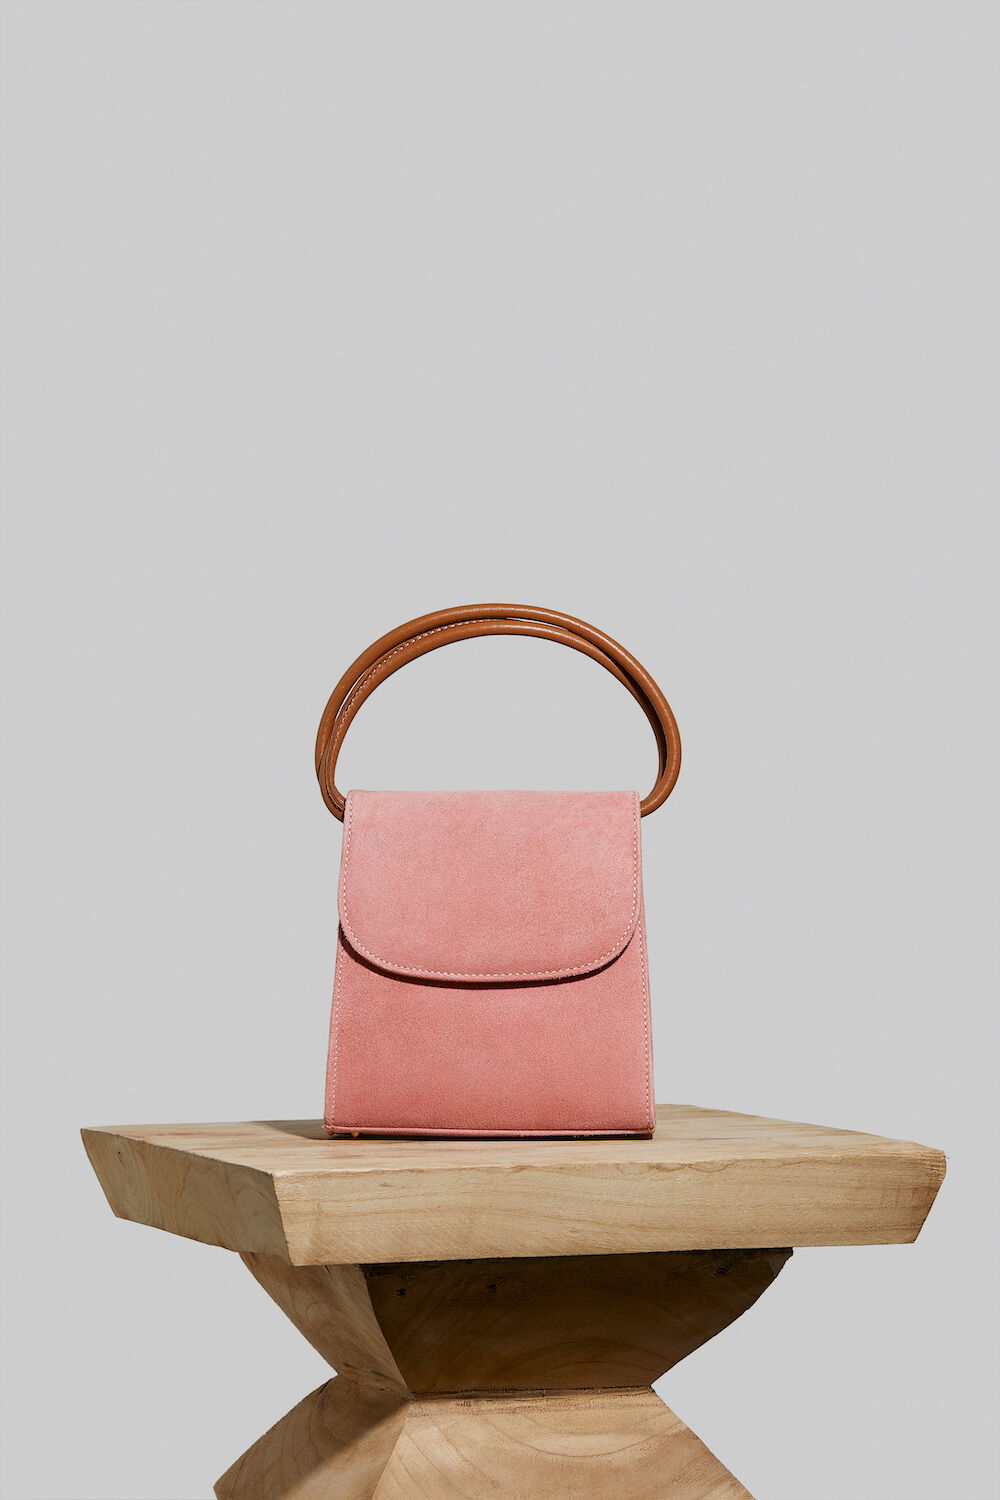 Loop Bag in Blush Pink Suede